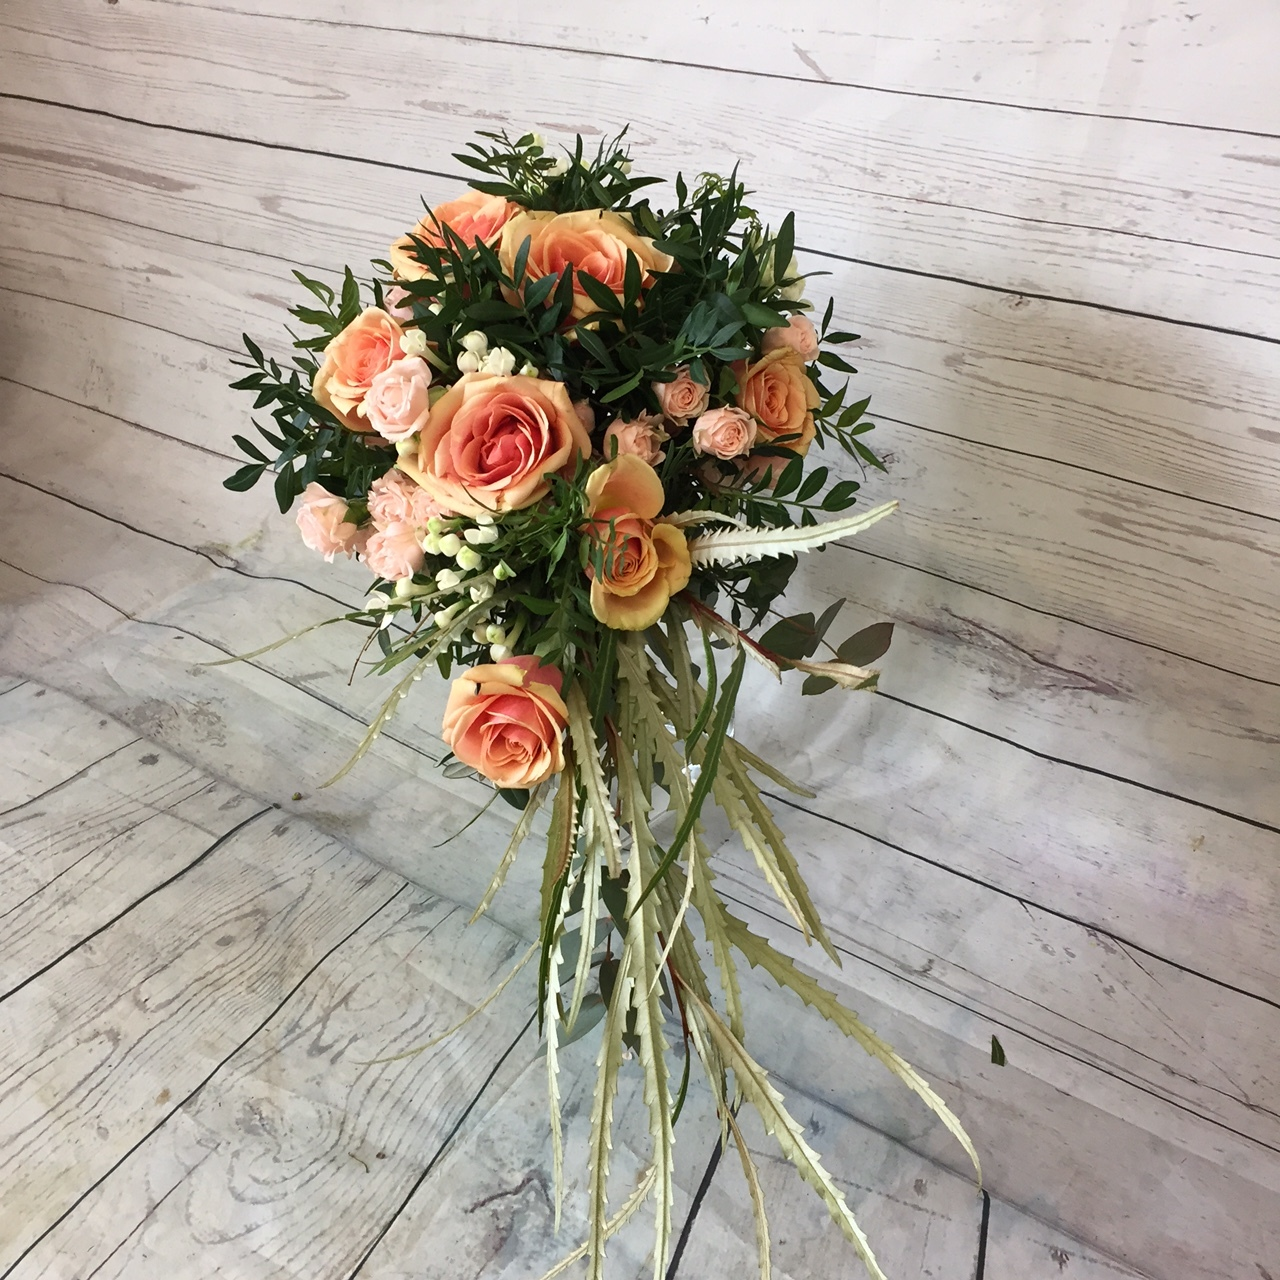 Trailing bridal bouquet